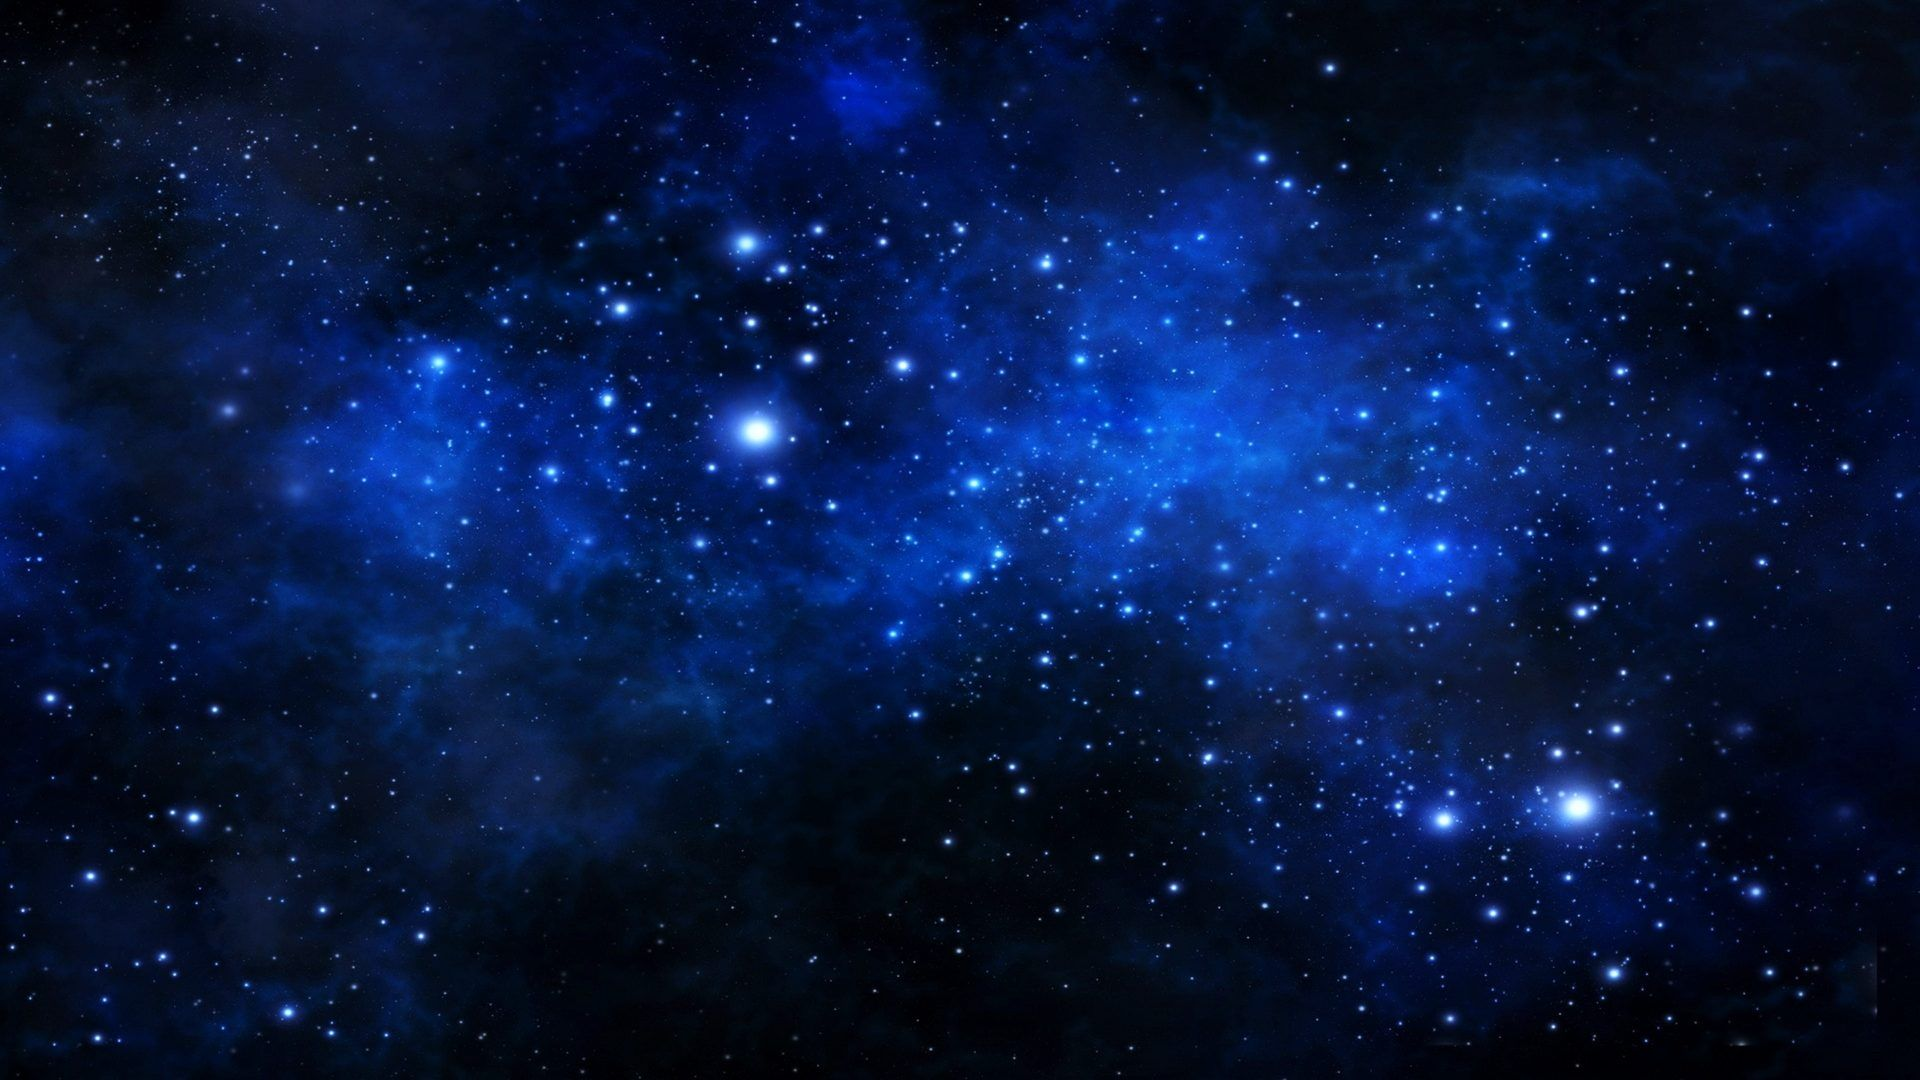 Blue Universe Space Wallpapers Top Free Blue Universe Space